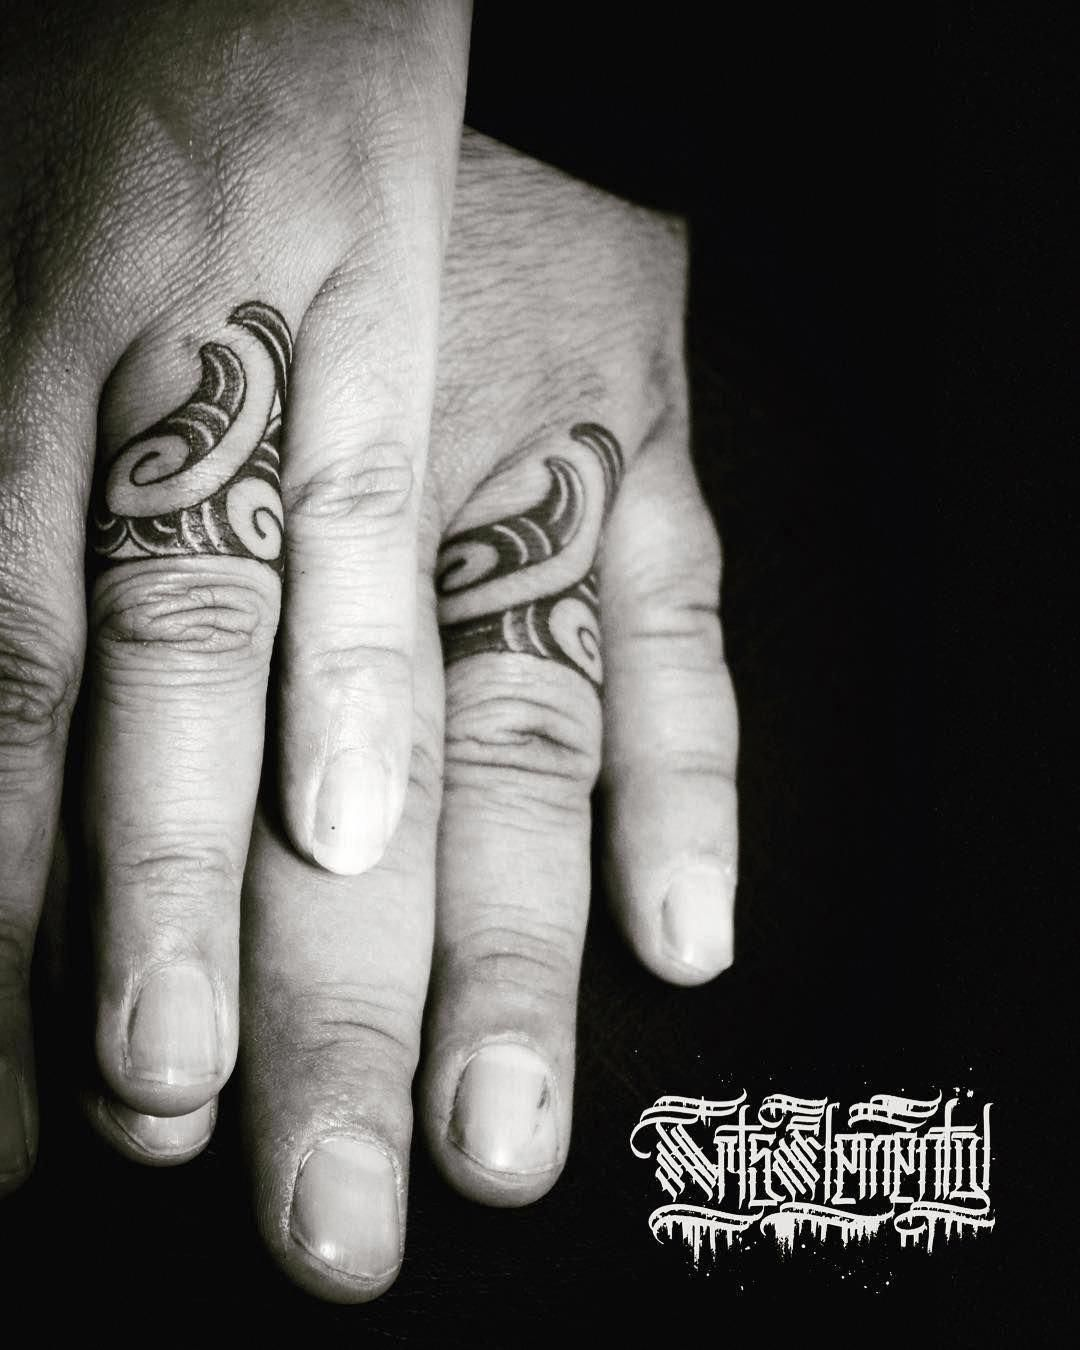 Check Out Our Page For A Little More With Regard To This Exceptional Photo Weddingringpair Tatuagem Maori Fingers Tattoo Tatuagem